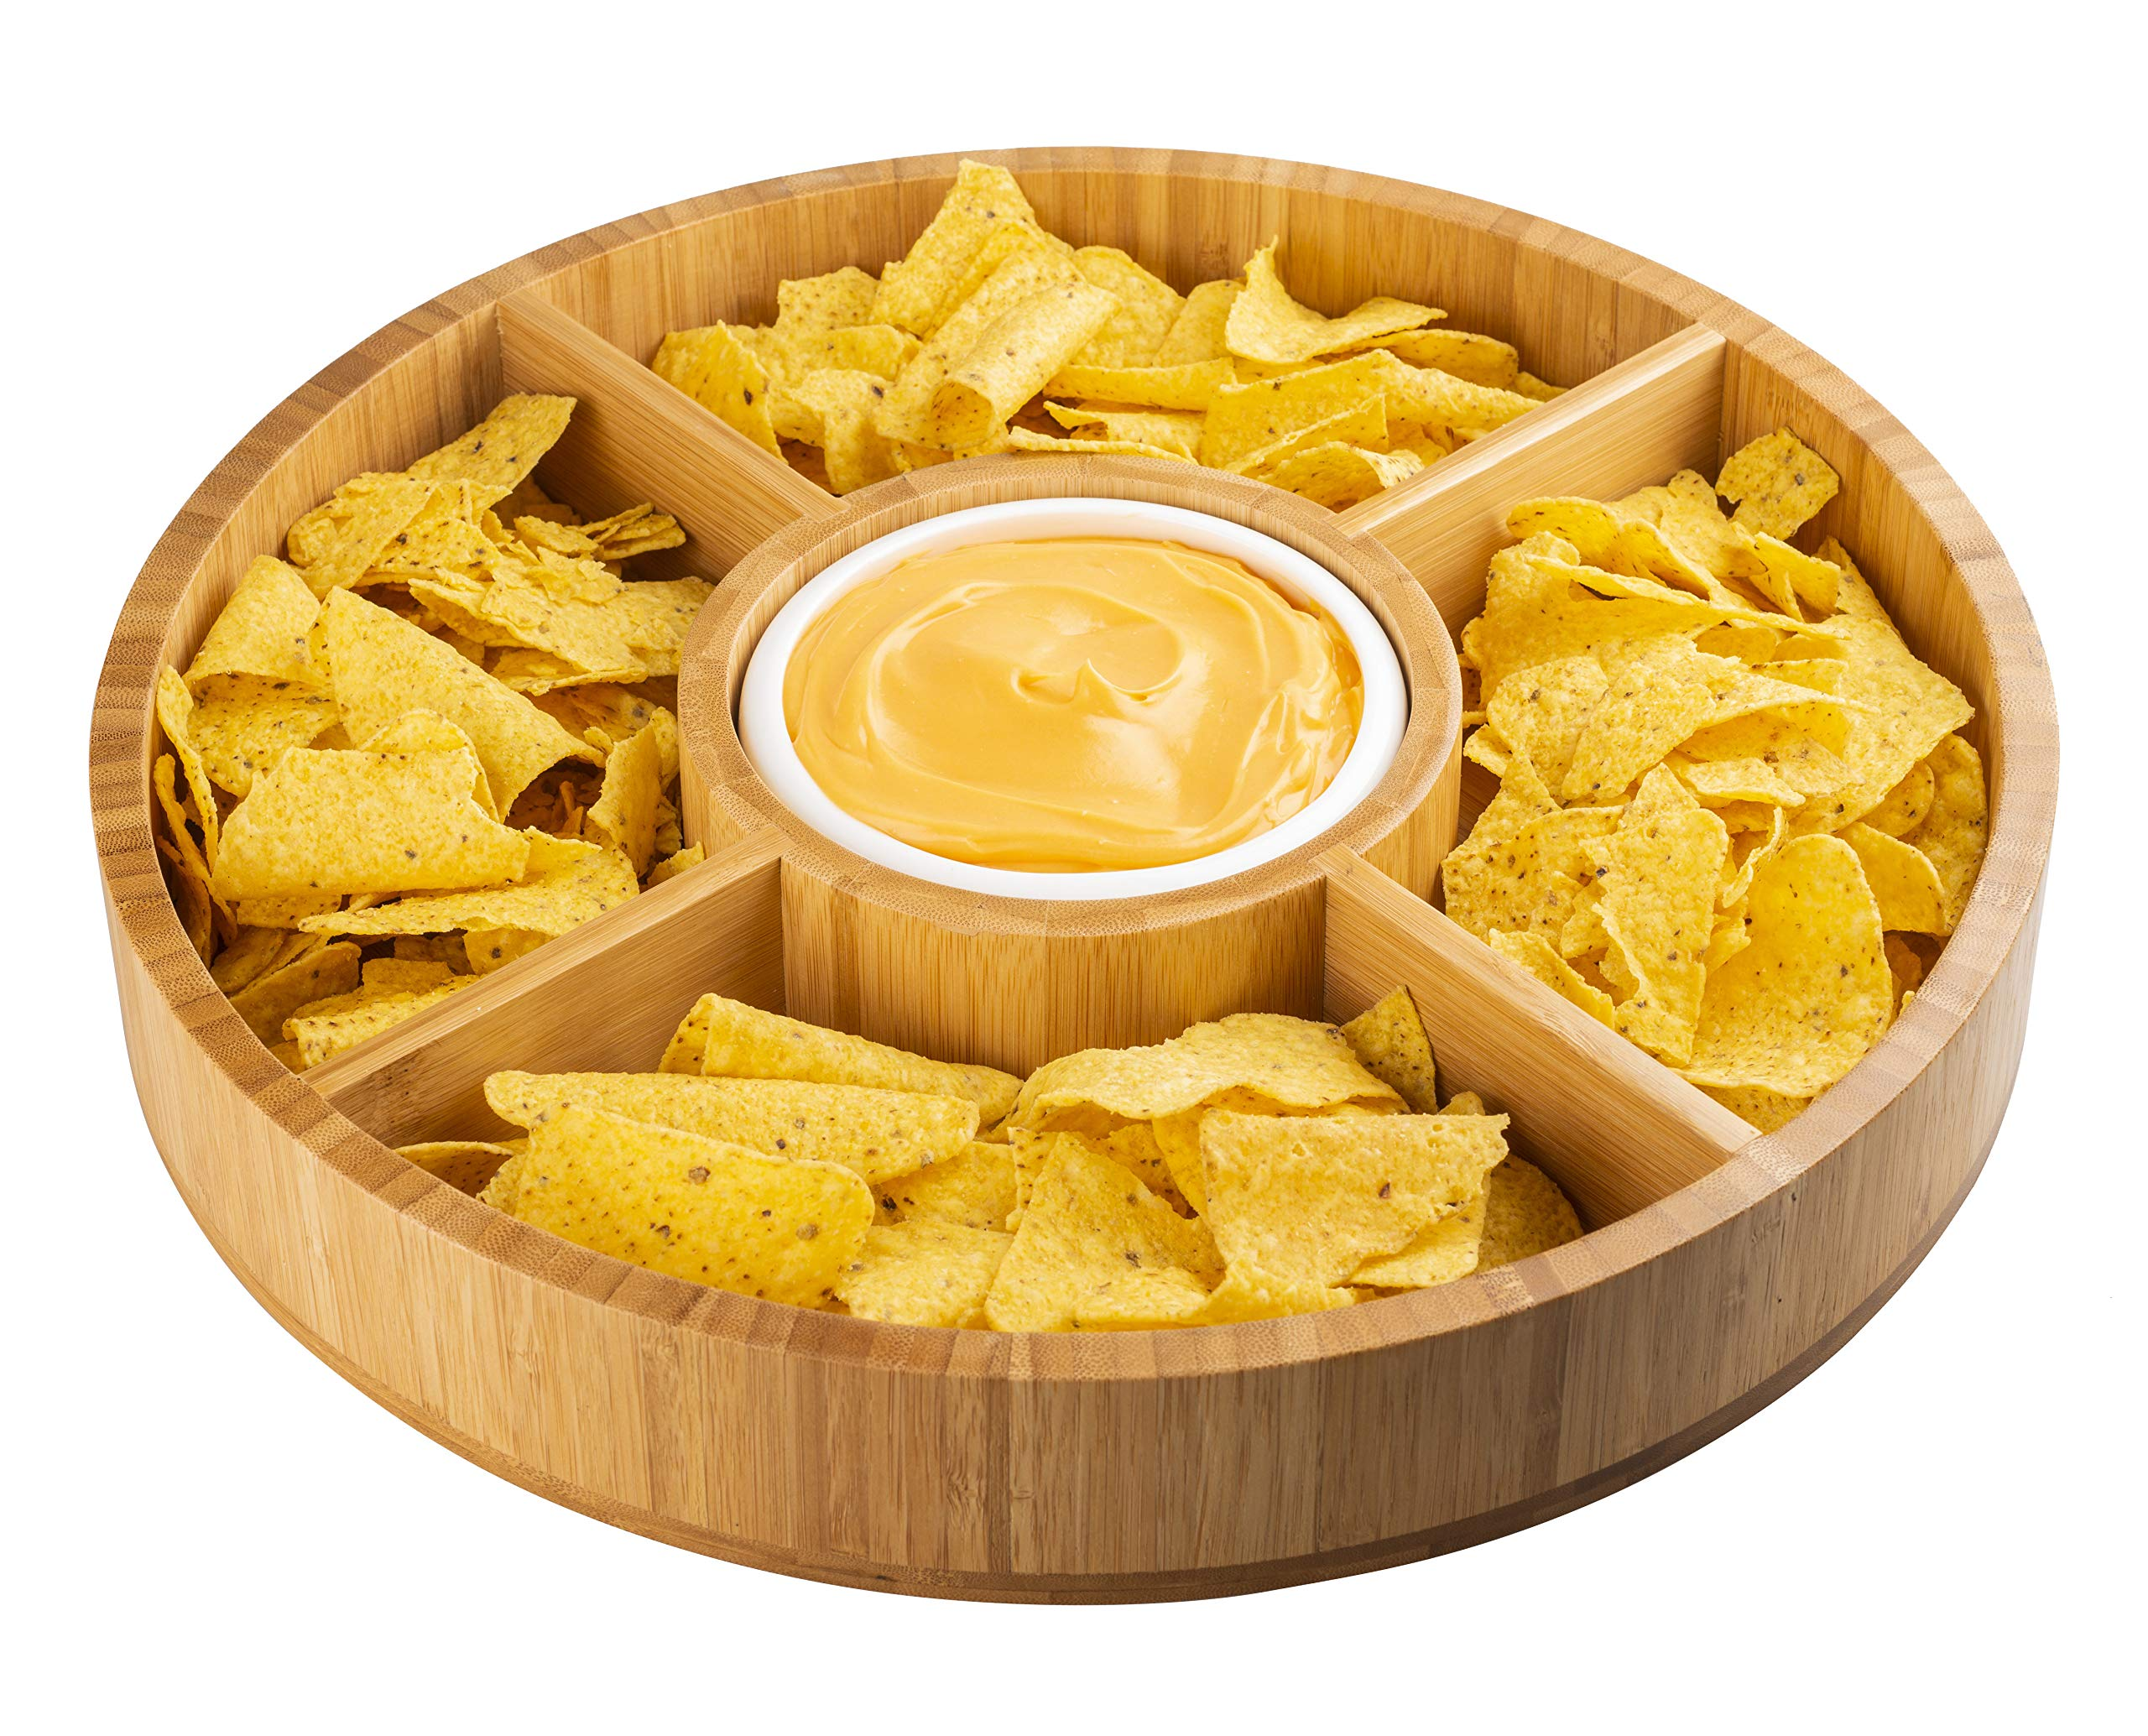 Strova 15 Inch Wood Bamboo Chip and Dip Serving Platter Set w/Ceramic Dip Bowl | Round & Large Chips Bowl Appetizer Server for Event Use | Salsa, Taco Chip, Guacamole, and Snacks Serving Tray